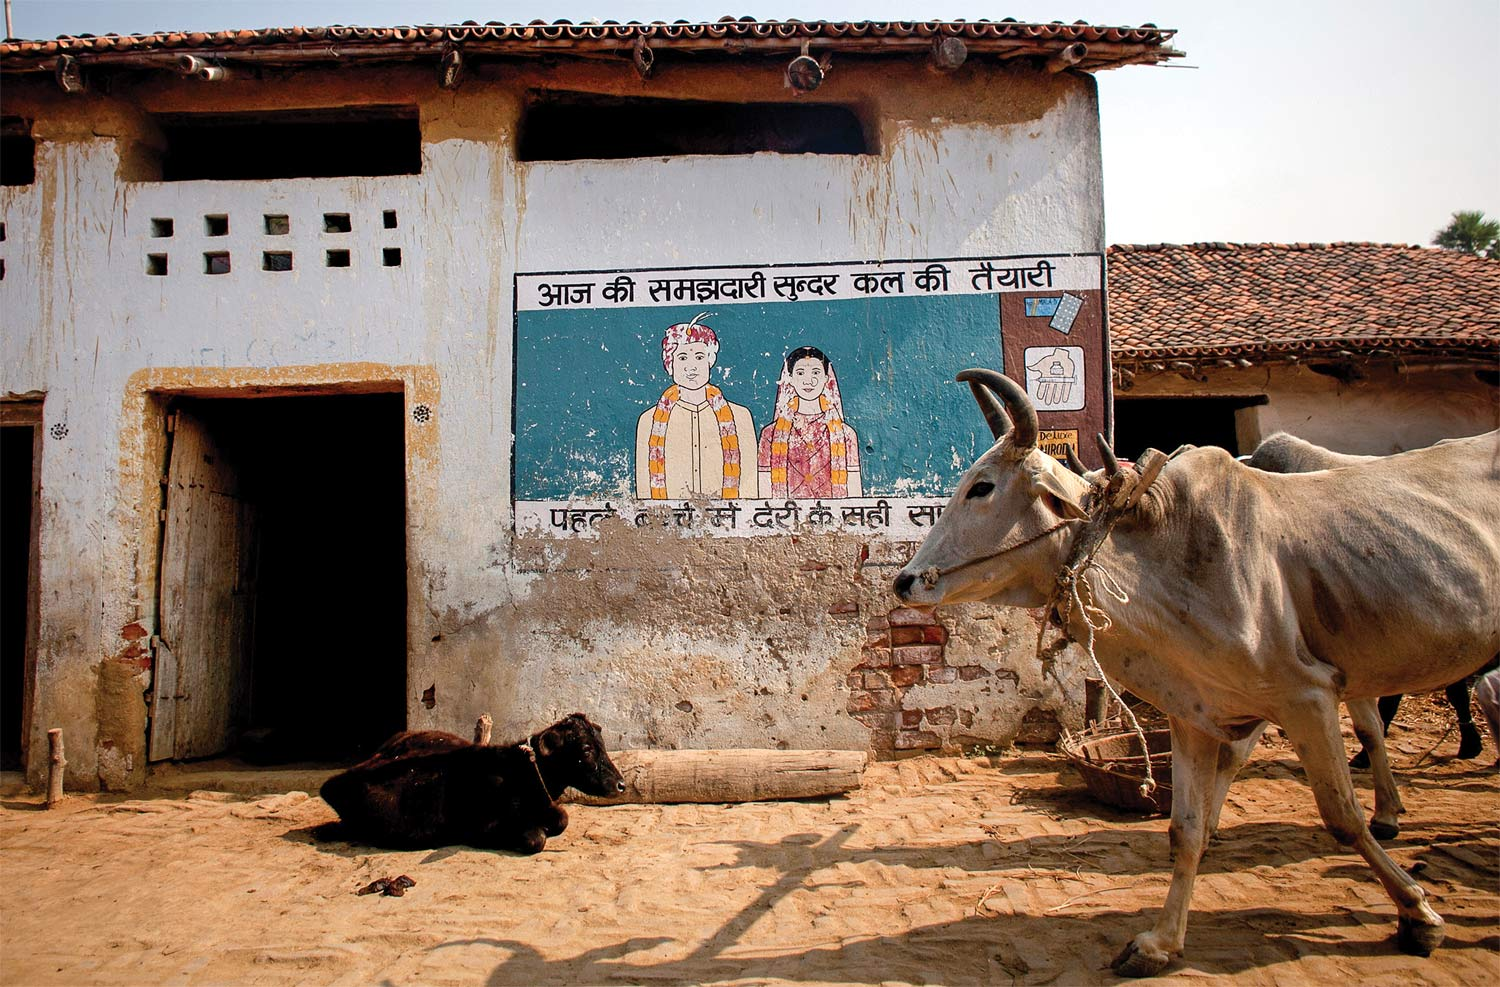 A Pathfinder mural advertising the benefits of family planning and reproductive health, in the village of Kazarshoth, 2013.